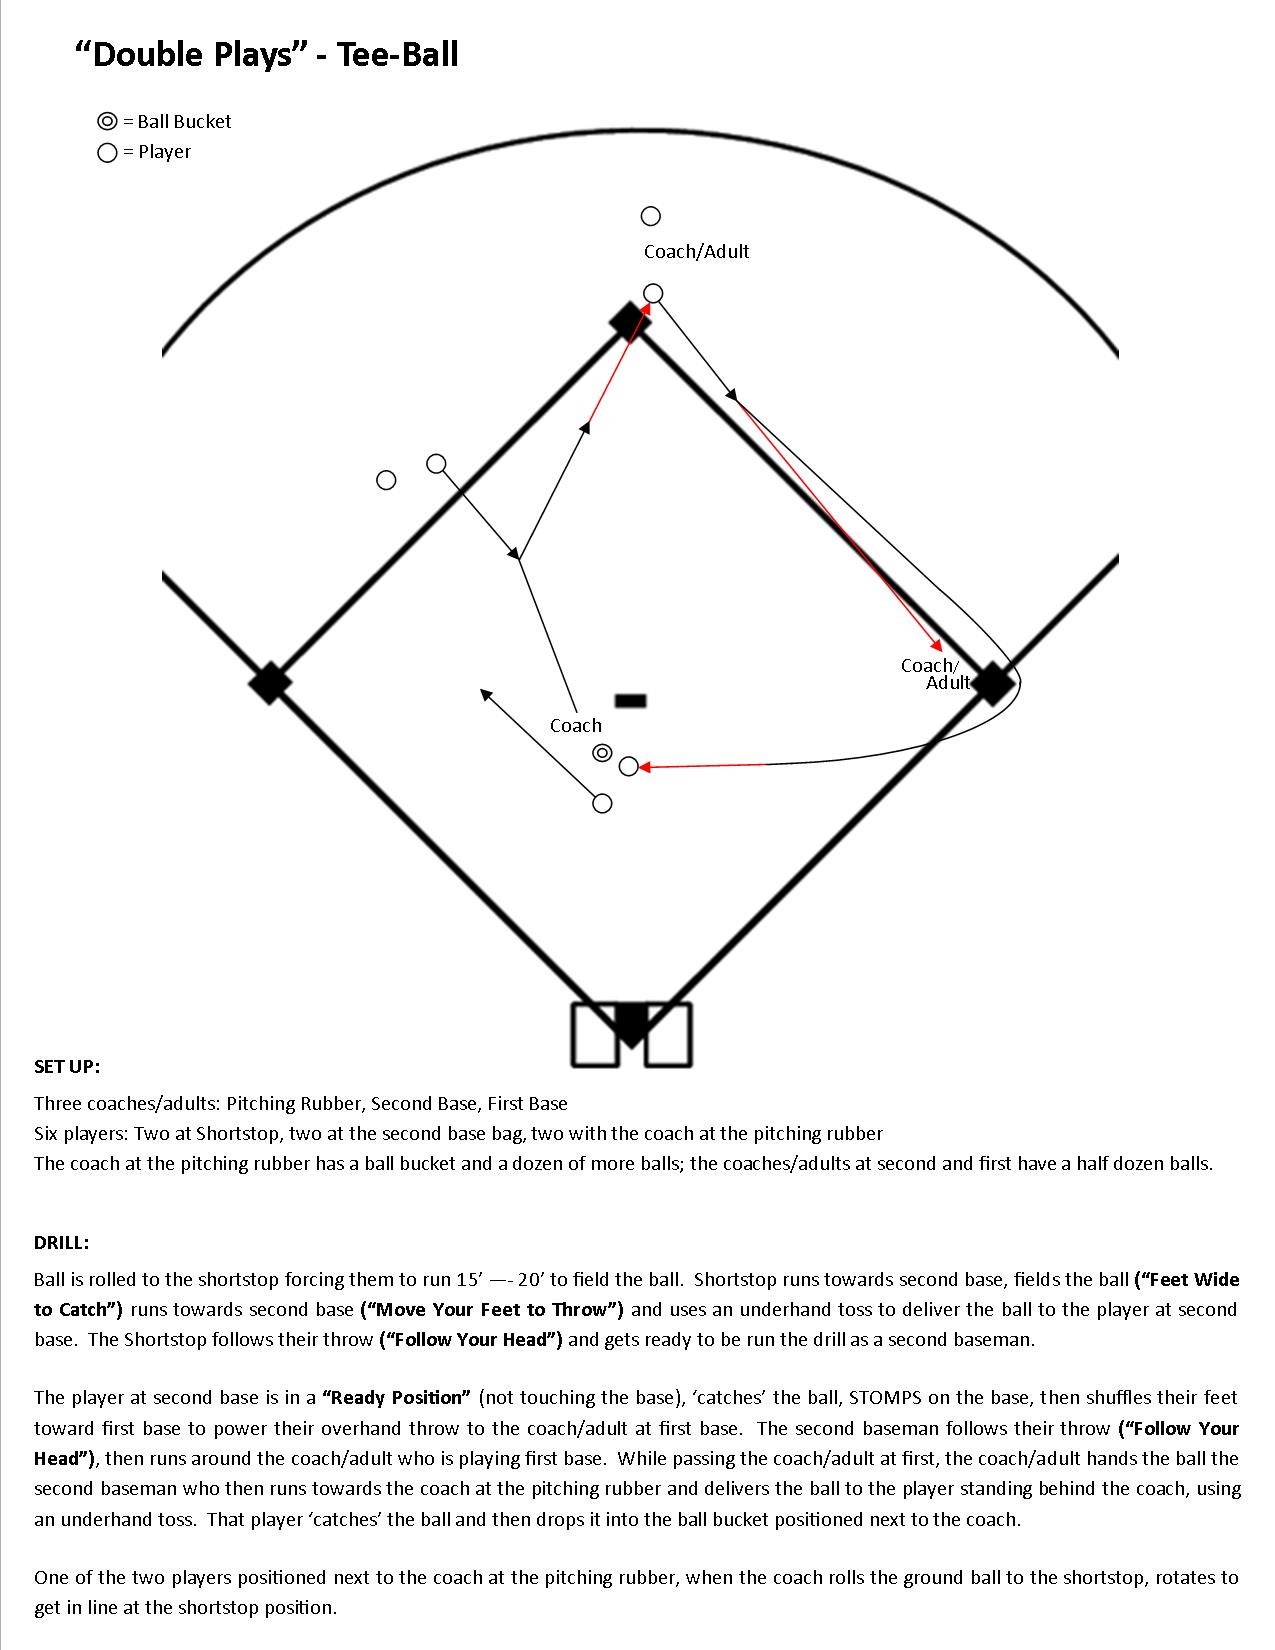 Adapting to running the drill given the mistakes the kids will make and running the drill with less than six players:    1.  Kids usually want to 'line up' within a few inches of each other*.   Shortstop Position:  Place two cones at shortstop, one for the player who will be fielding the next ground ball and the other cone 5'-10' away for the next player.   Second Base Position:  we instruct the extra player to stand behind the assisting adult, while the player participating in the drill is positioned next to the base. After the player participating in the drill moves away from the base, the coach/adult tells the next player to get into position next to the base.   Players positioned next to the coach at the pitching rubber:  just before the coach rolls the ground ball to the shortstop, the coach instructs one of the players standing next to them to rotate to the 'waiting cone' at shortstop.   2.  The kids will not catch many of the throws to second base - the coach/adult at second base always keeps a ball in hand. When the player at second base misses a throw, the coach hands them a new ball in order to keep the drill going. ( RULE:  the players are not allowed to chase missed throws.)   3.  The kids throwing the ball from second base to first base, the first couple of days the drill is run, misunderstand that their throw is supposed to be overhand; they will run to first and make and underhand toss. Simply continue to remind them that this LONG throw is overhand. After running this drill at a couple of practices this will not be much of an issue.   4.  Some throws to the coach/adult at first base will not be accurate. The coach/adult at first keeps a spare ball in hand at all times to be available to hand to the player as they run by. It is also important for the coach/adult to recognize the throwing strength of the next player who will be throwing to them. When a child who does not have as much throwing strength comes up, the coach/adult at first base moves closer to second base to a distance more in line with that particular child's throwing capability. (This coach/adult will be moving a fair amount throughout the drill)   If fewer than six kids participating in the drill:  If  five  players: eliminate the extra player at second base. If  four  players: eliminate the extra player next to the coach at the pitching rubber. The single player there waits to 'catch' the underhand toss from the player running around the coach/adult at first base. They drop the ball in the bucket, then runs to the 'waiting cone' at shortstop. (Note: if the tossed ball goes far past them we remind them of the RULE: 'players are not allowed to chase missed throw' and instruct them to let the ball go and rotate to the 'waiting cone' at shortstop.    * The natural survival instinct in a child drives them to stick as close as possible to the kids ahead of them in line in order to reduce the possibility of someone else getting in line ahead of them (to be the next to get food, protection, etc.) In modern society this should not be a concern, but until kids mature their basic survival instincts dominate their behavior. Given an understanding of this and other reasons behind young children's behavior makes it easier for the coaches/adults working with them to not allow these behaviors cause frustration. They can then lead the kids with greater empathy and reduce their urge to fight behaviors that are difficult to change and/or use strategies to overcome these behaviors.